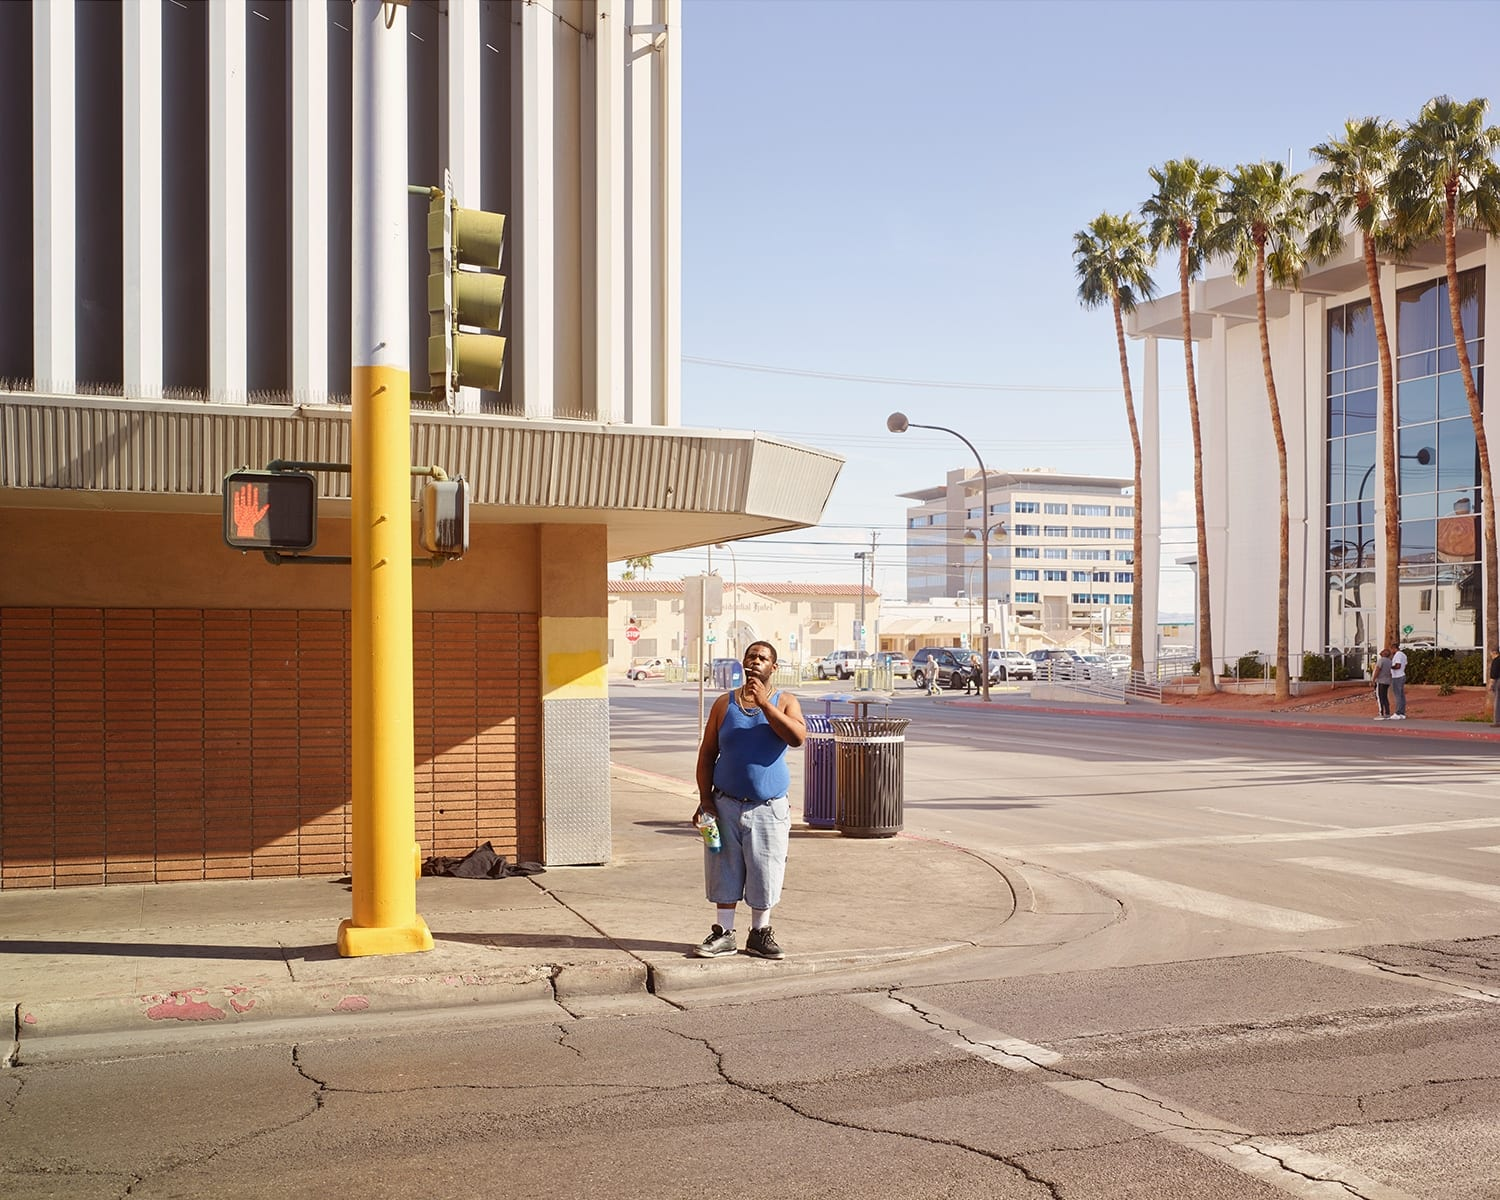 Oli Kellett Carson Ave, Las Vegas - HackelBury Fine Art London - photograph of man in blue shirt at cross walk with palm trees in background